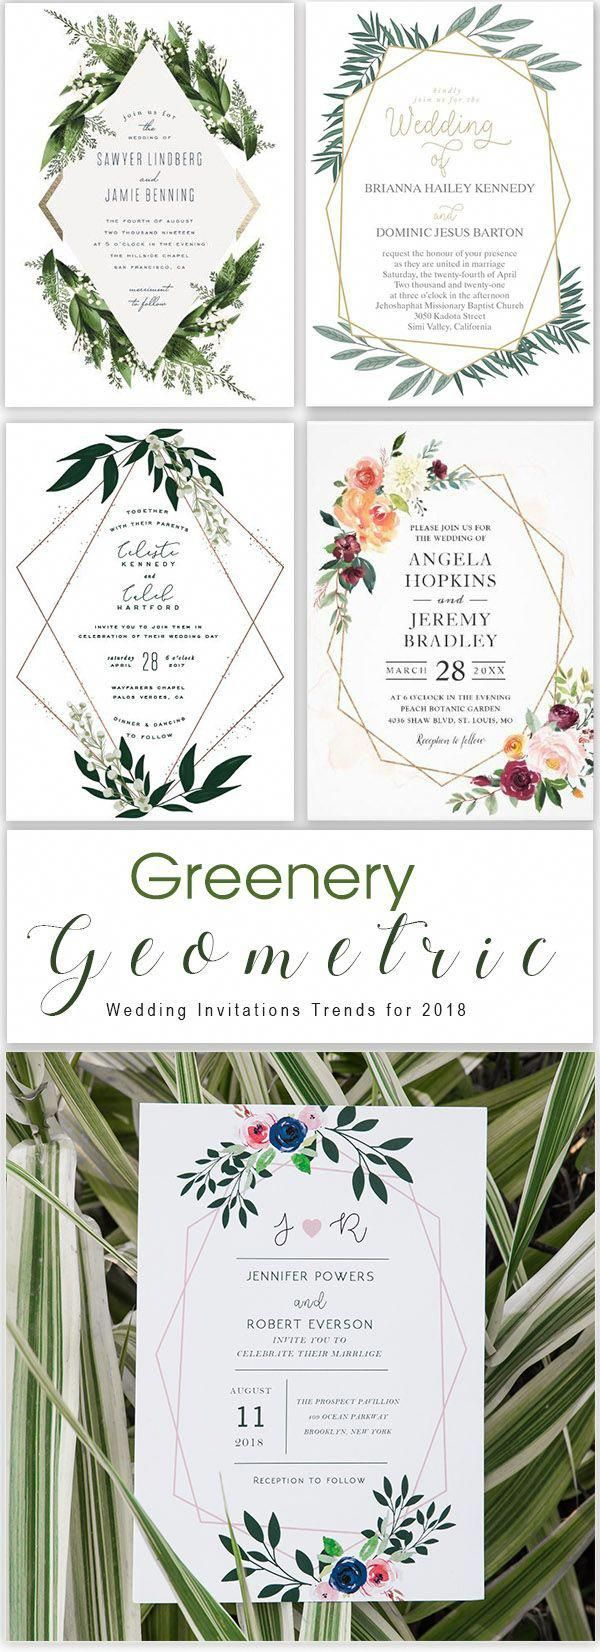 Wedding event invitations are an important part of a